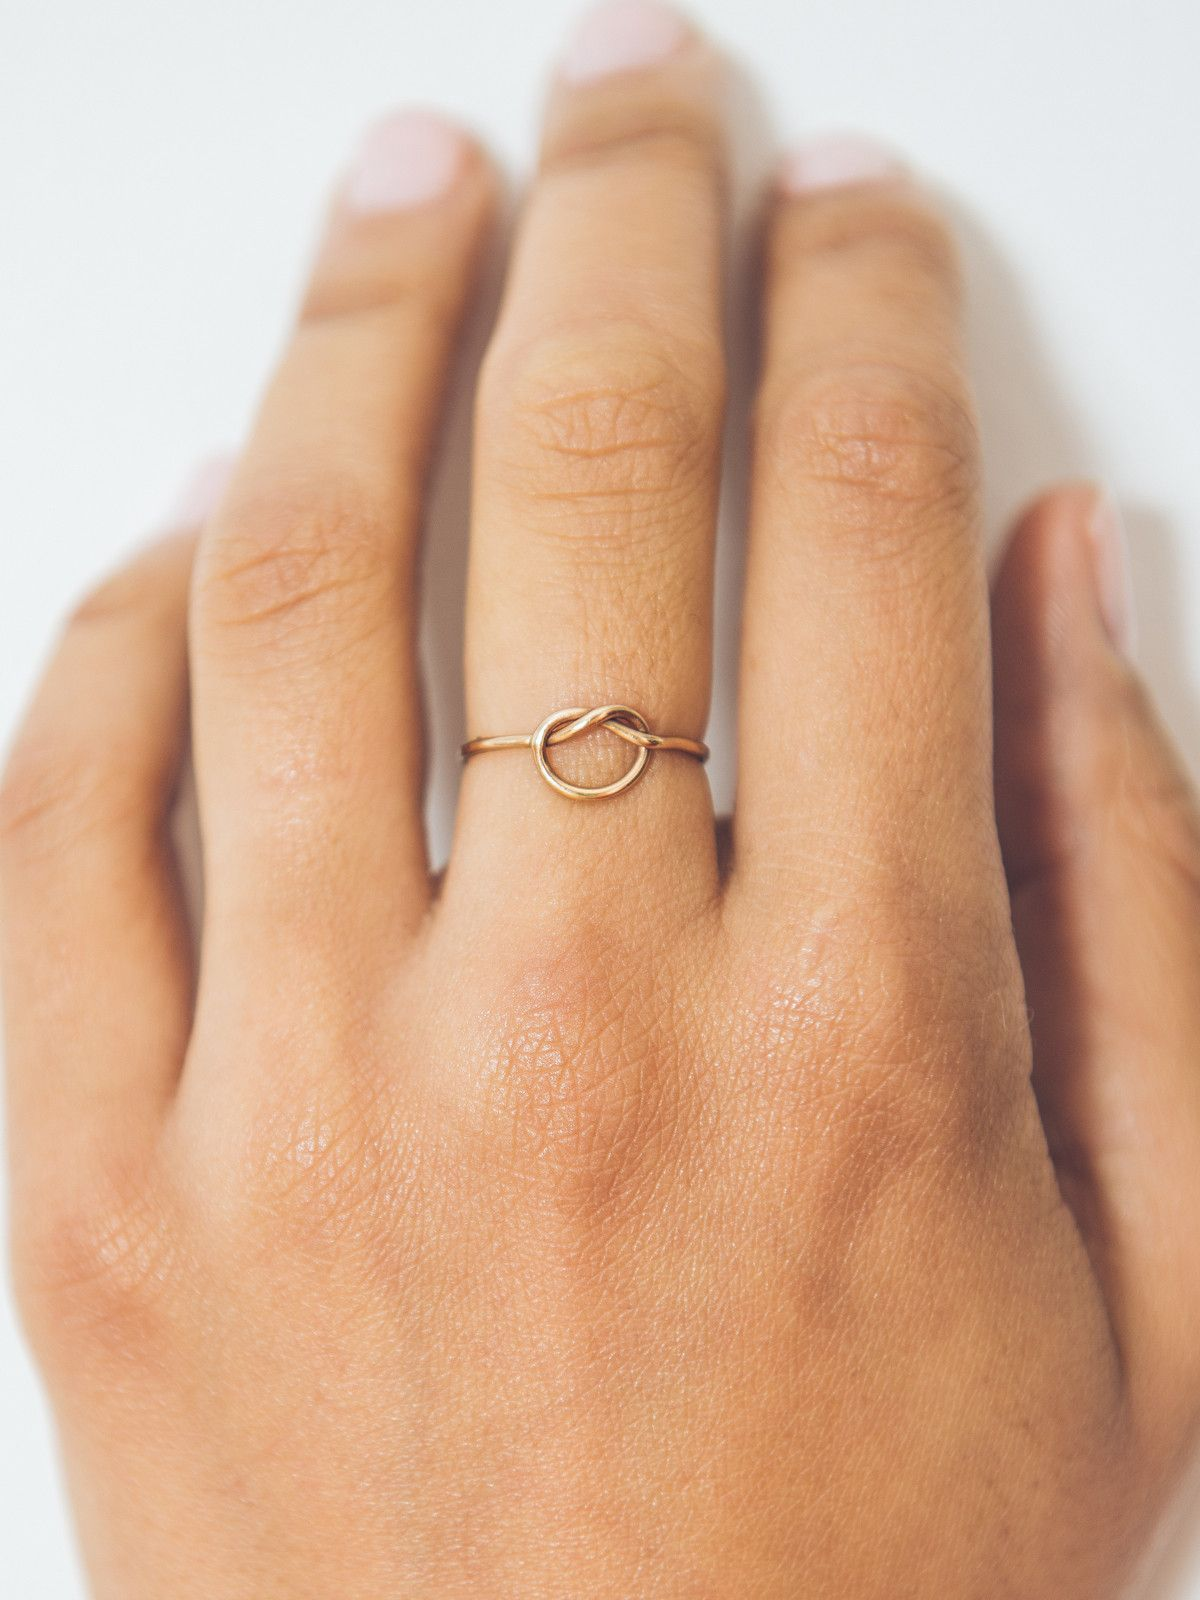 Infinity Knot Ring Engagement Rings Pinterest Jewelry Jewelry